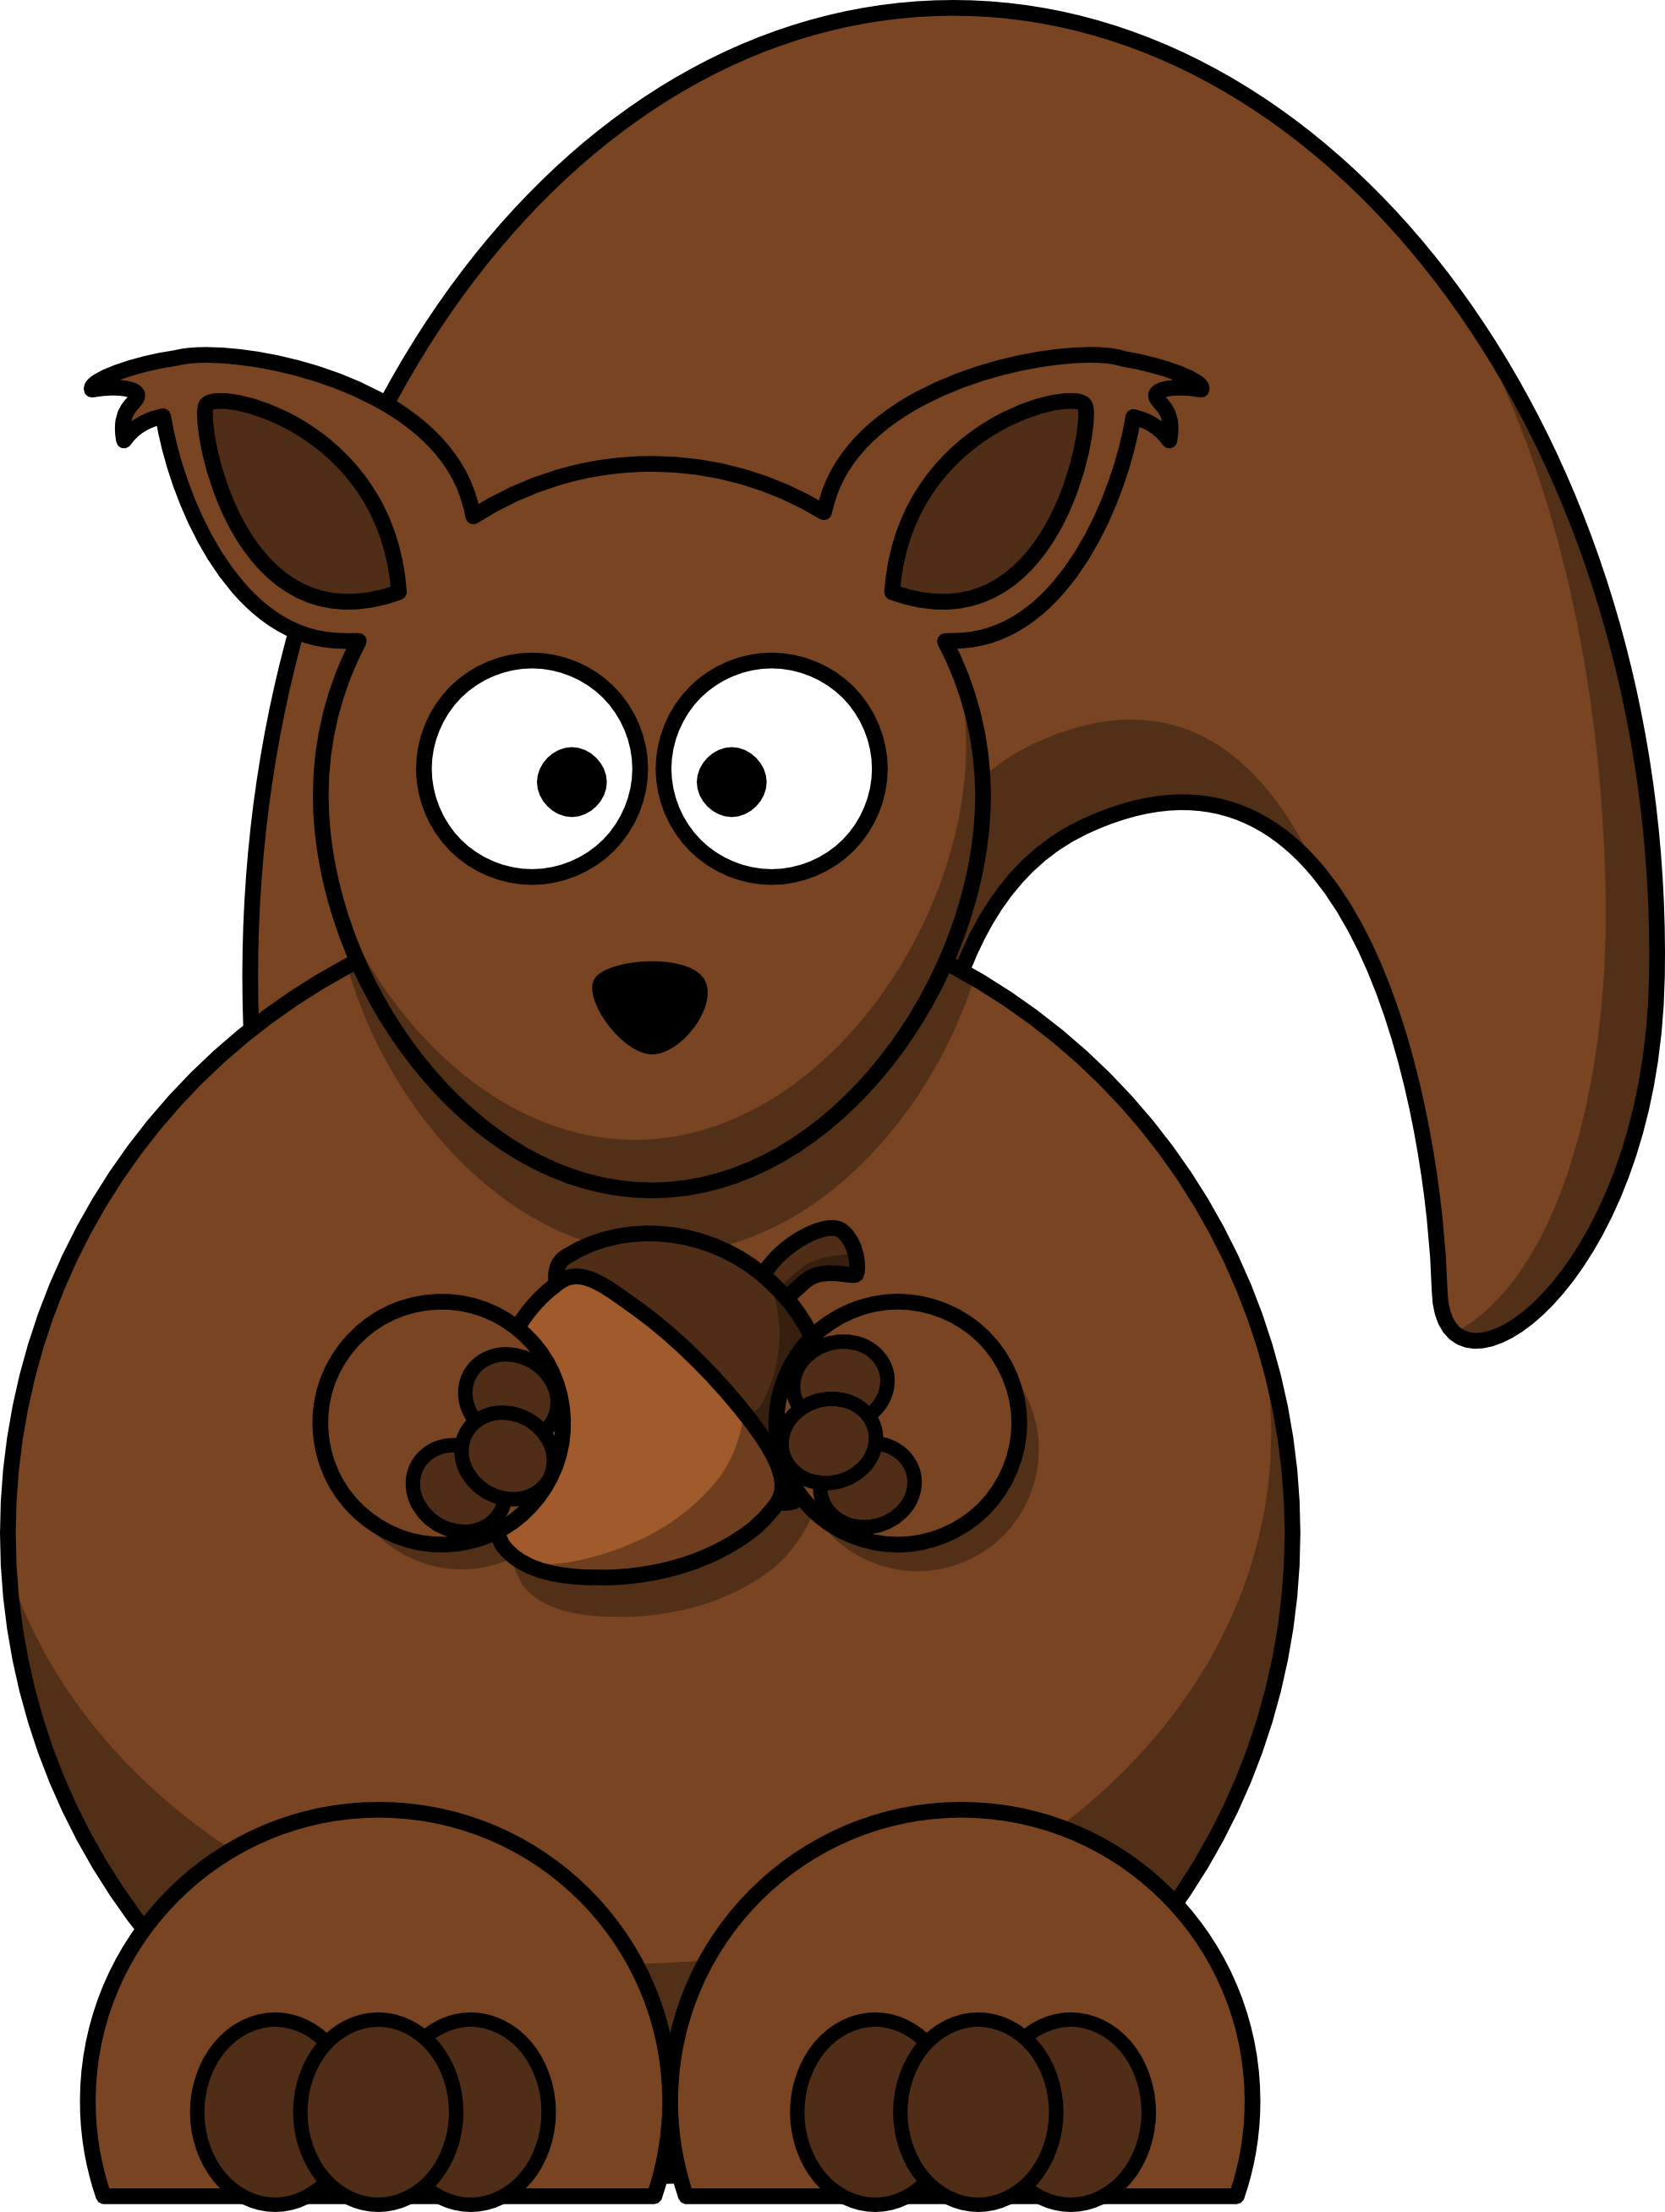 Cartoon squirrel clipart free clip art free stock Squirrel Clipart | animals | Squirrel clipart, Squirrel, Clip art clip art free stock